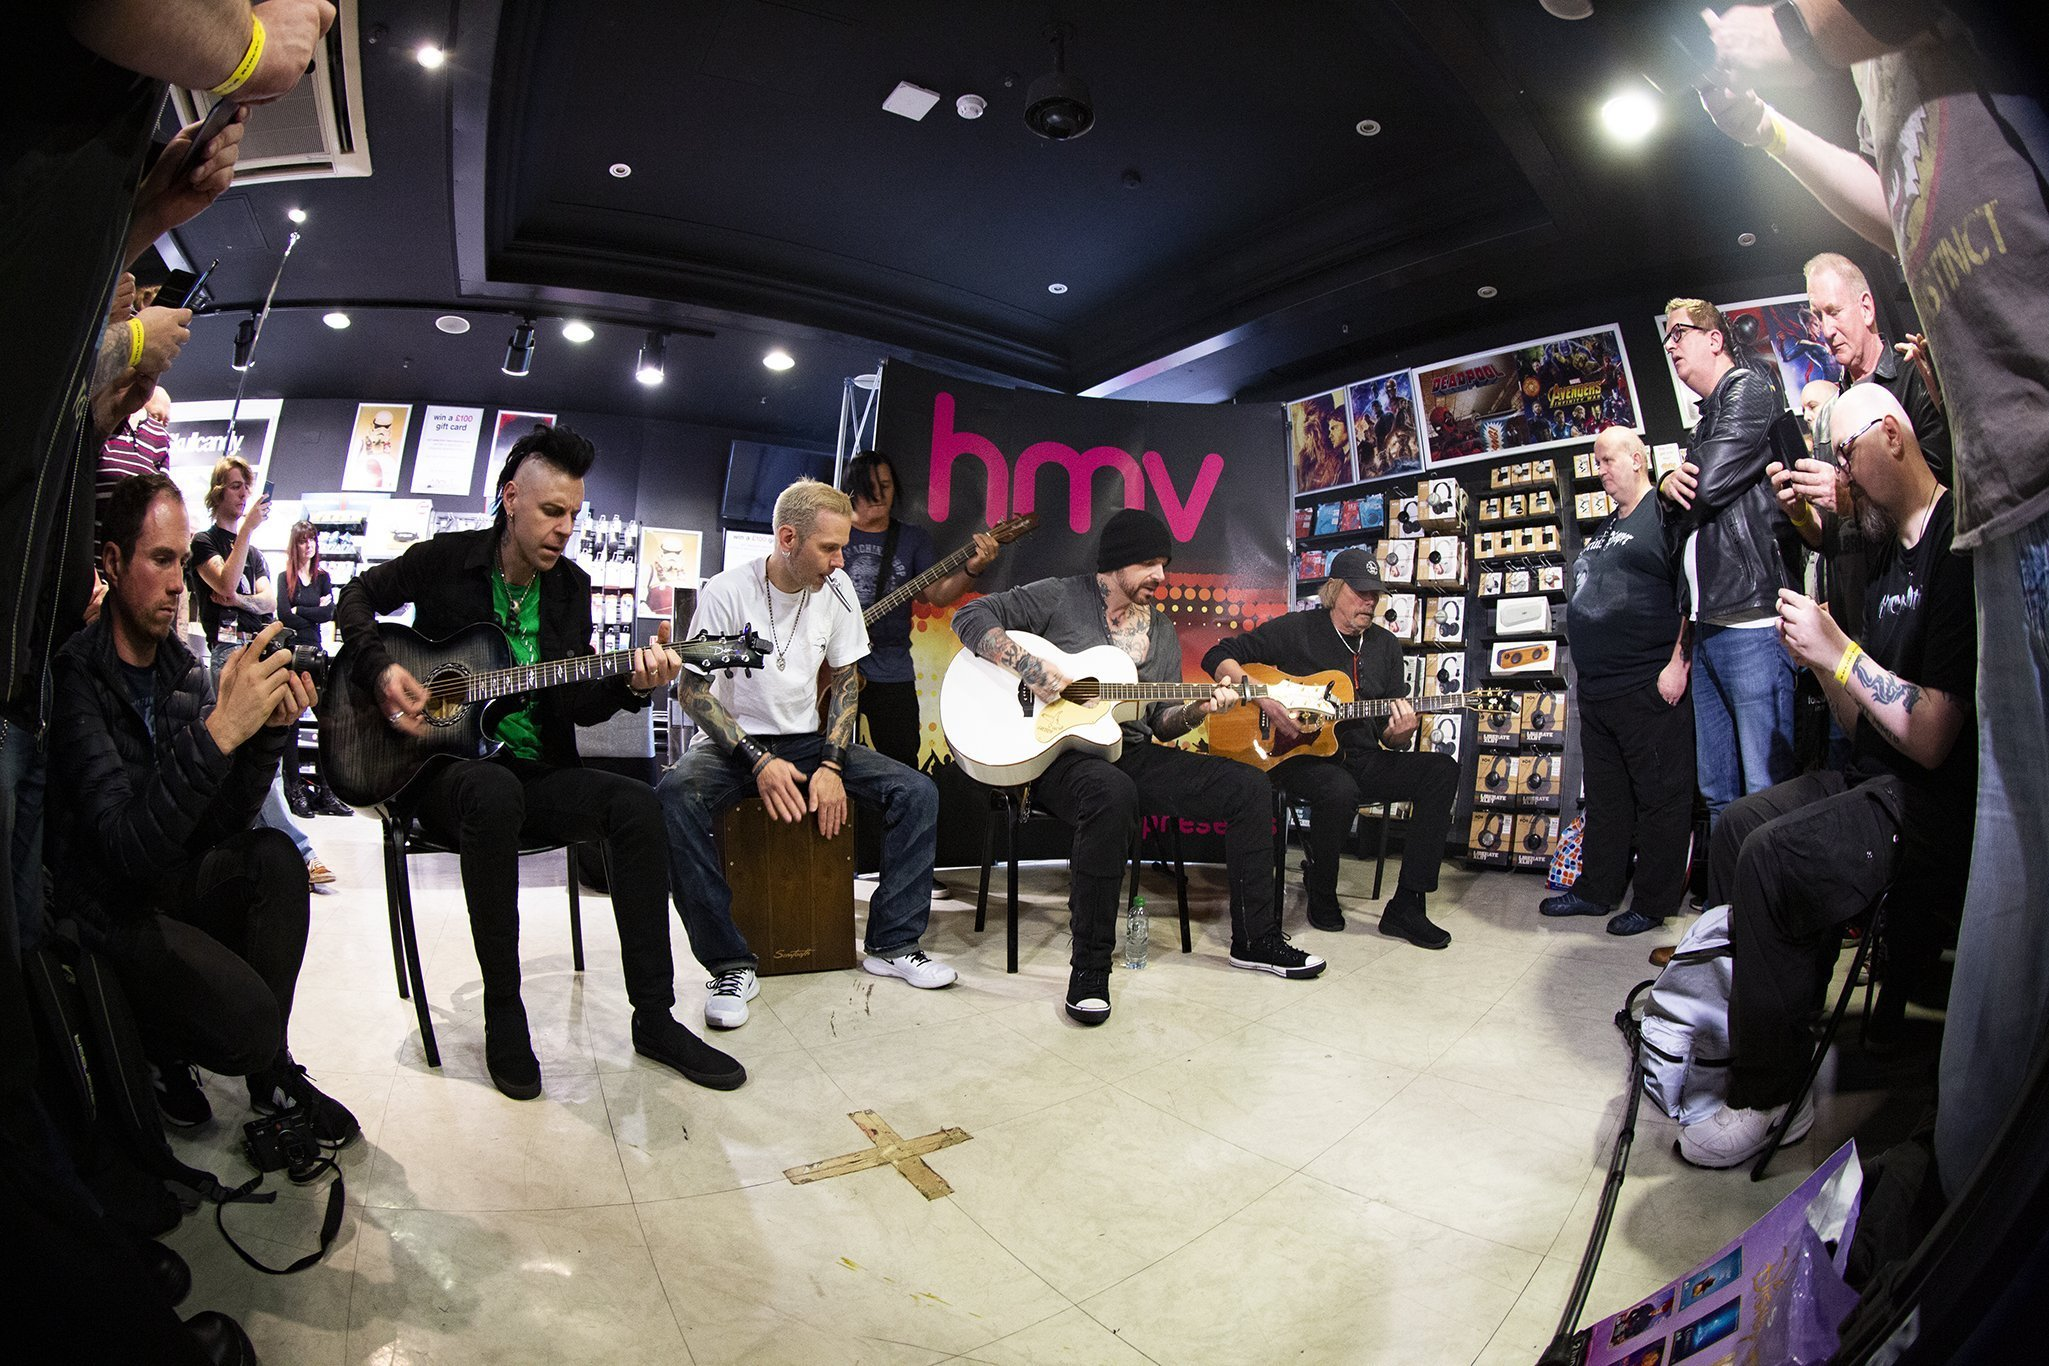 IN FOCUS// Black Star Riders - Live Acoustic Set and Signing - HMV Belfast Acoustic